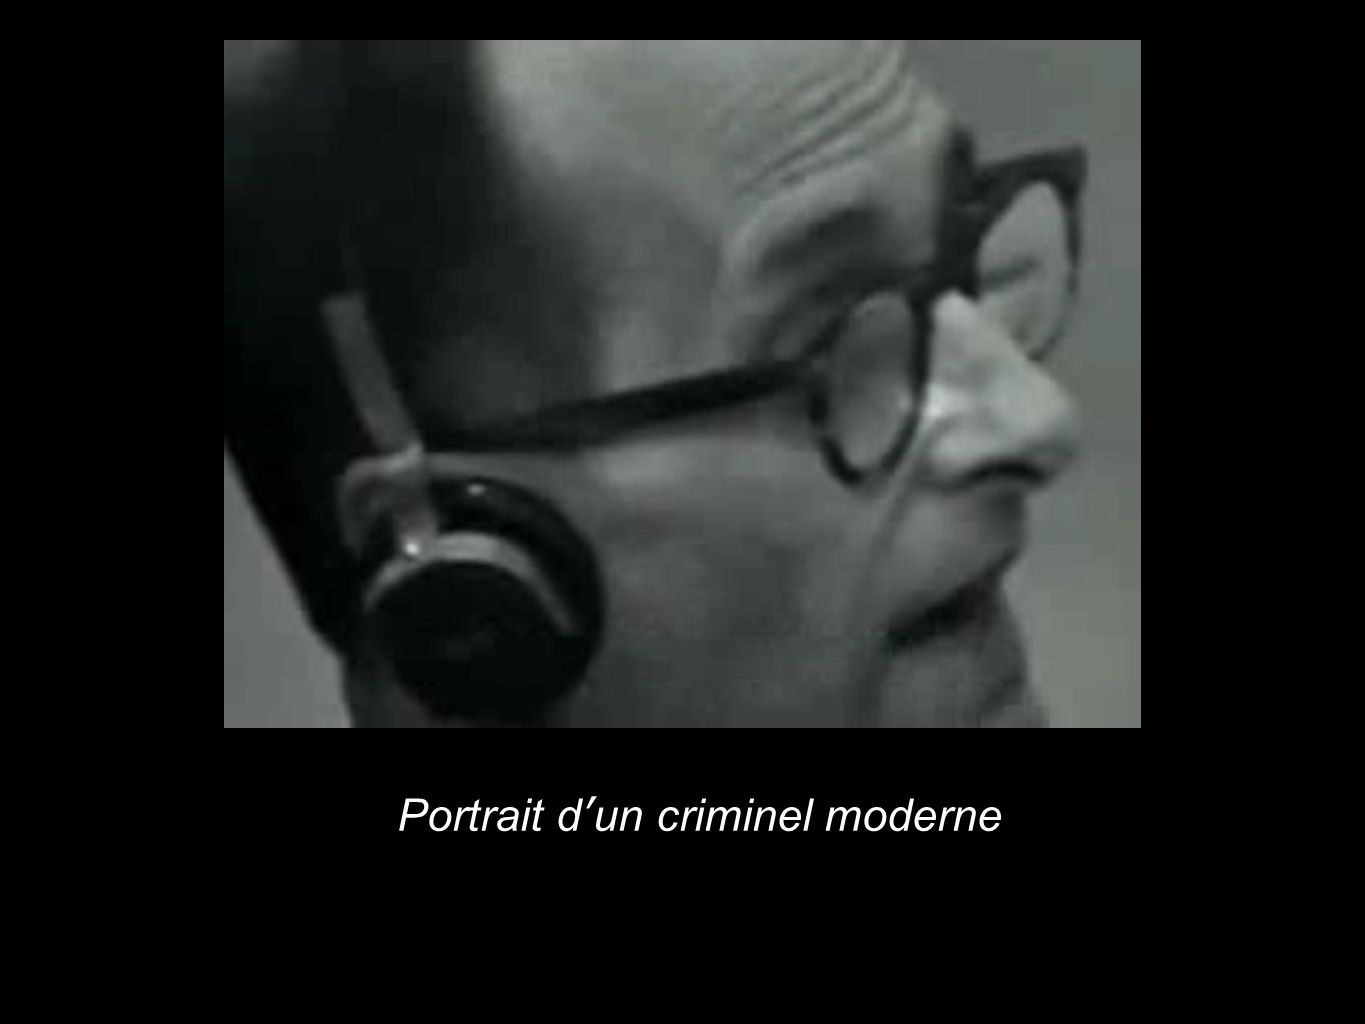 Portrait d'un criminel moderne